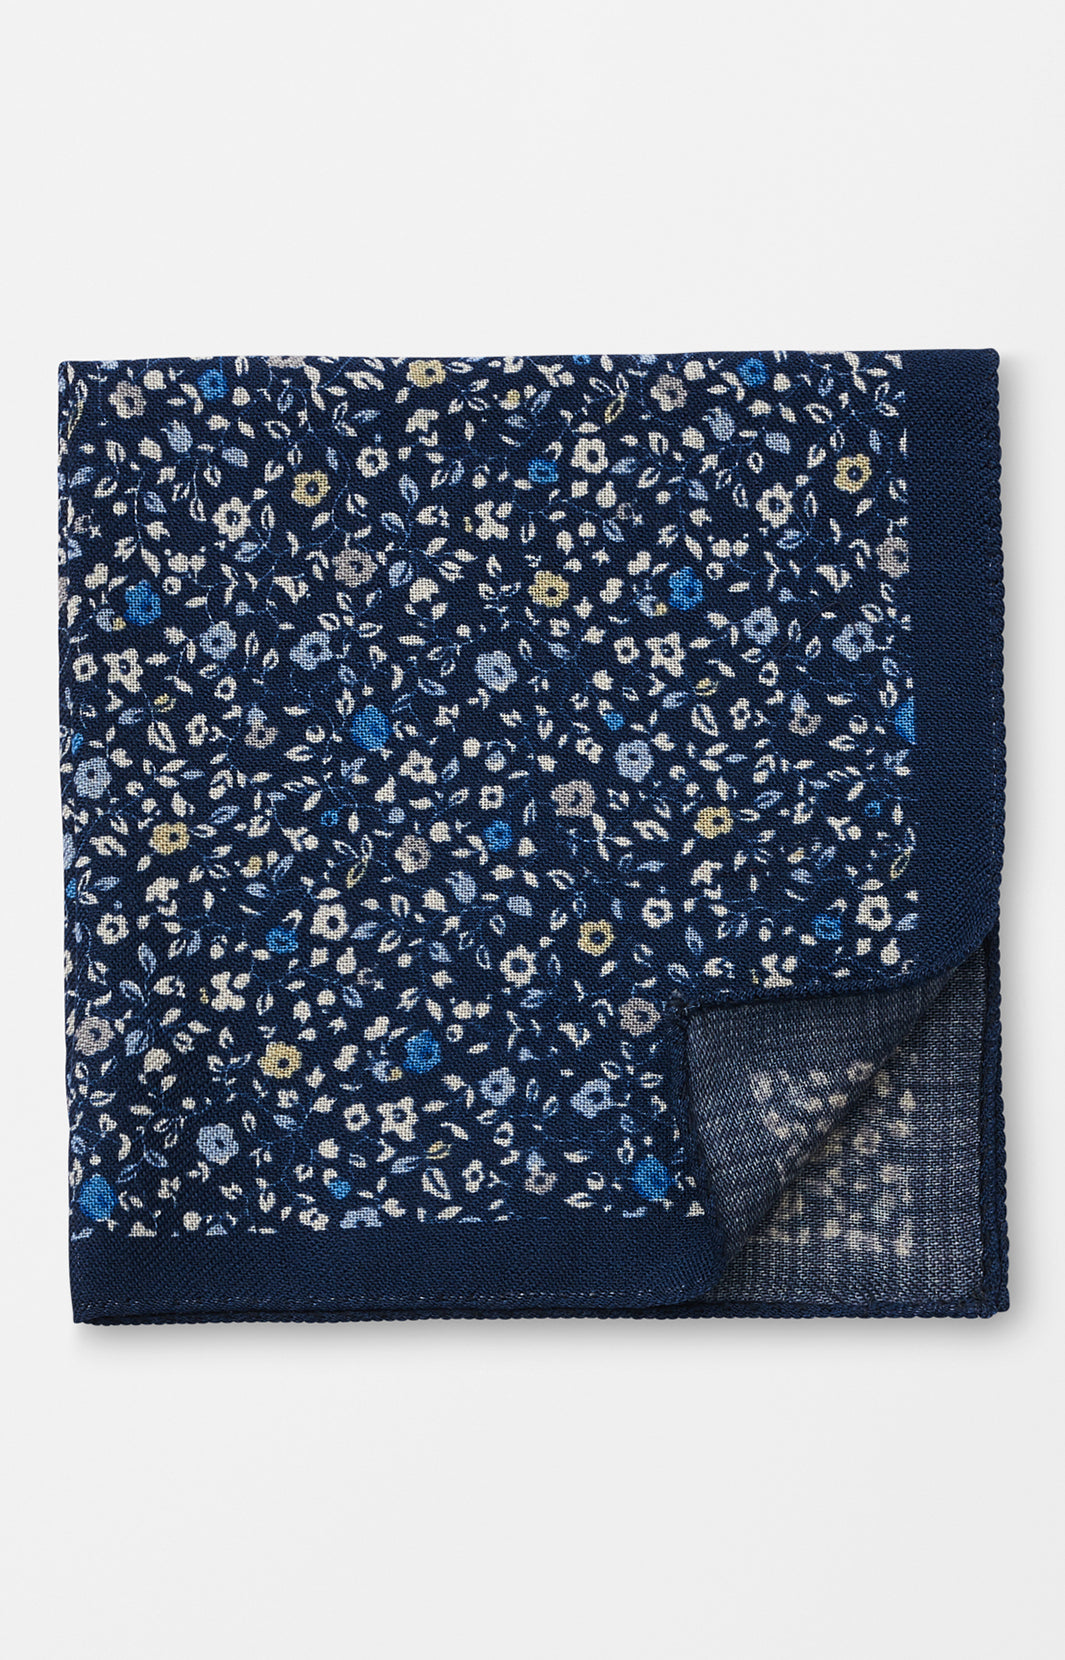 FALL FLORAL PRINT POCKET SQUARE - NAVY